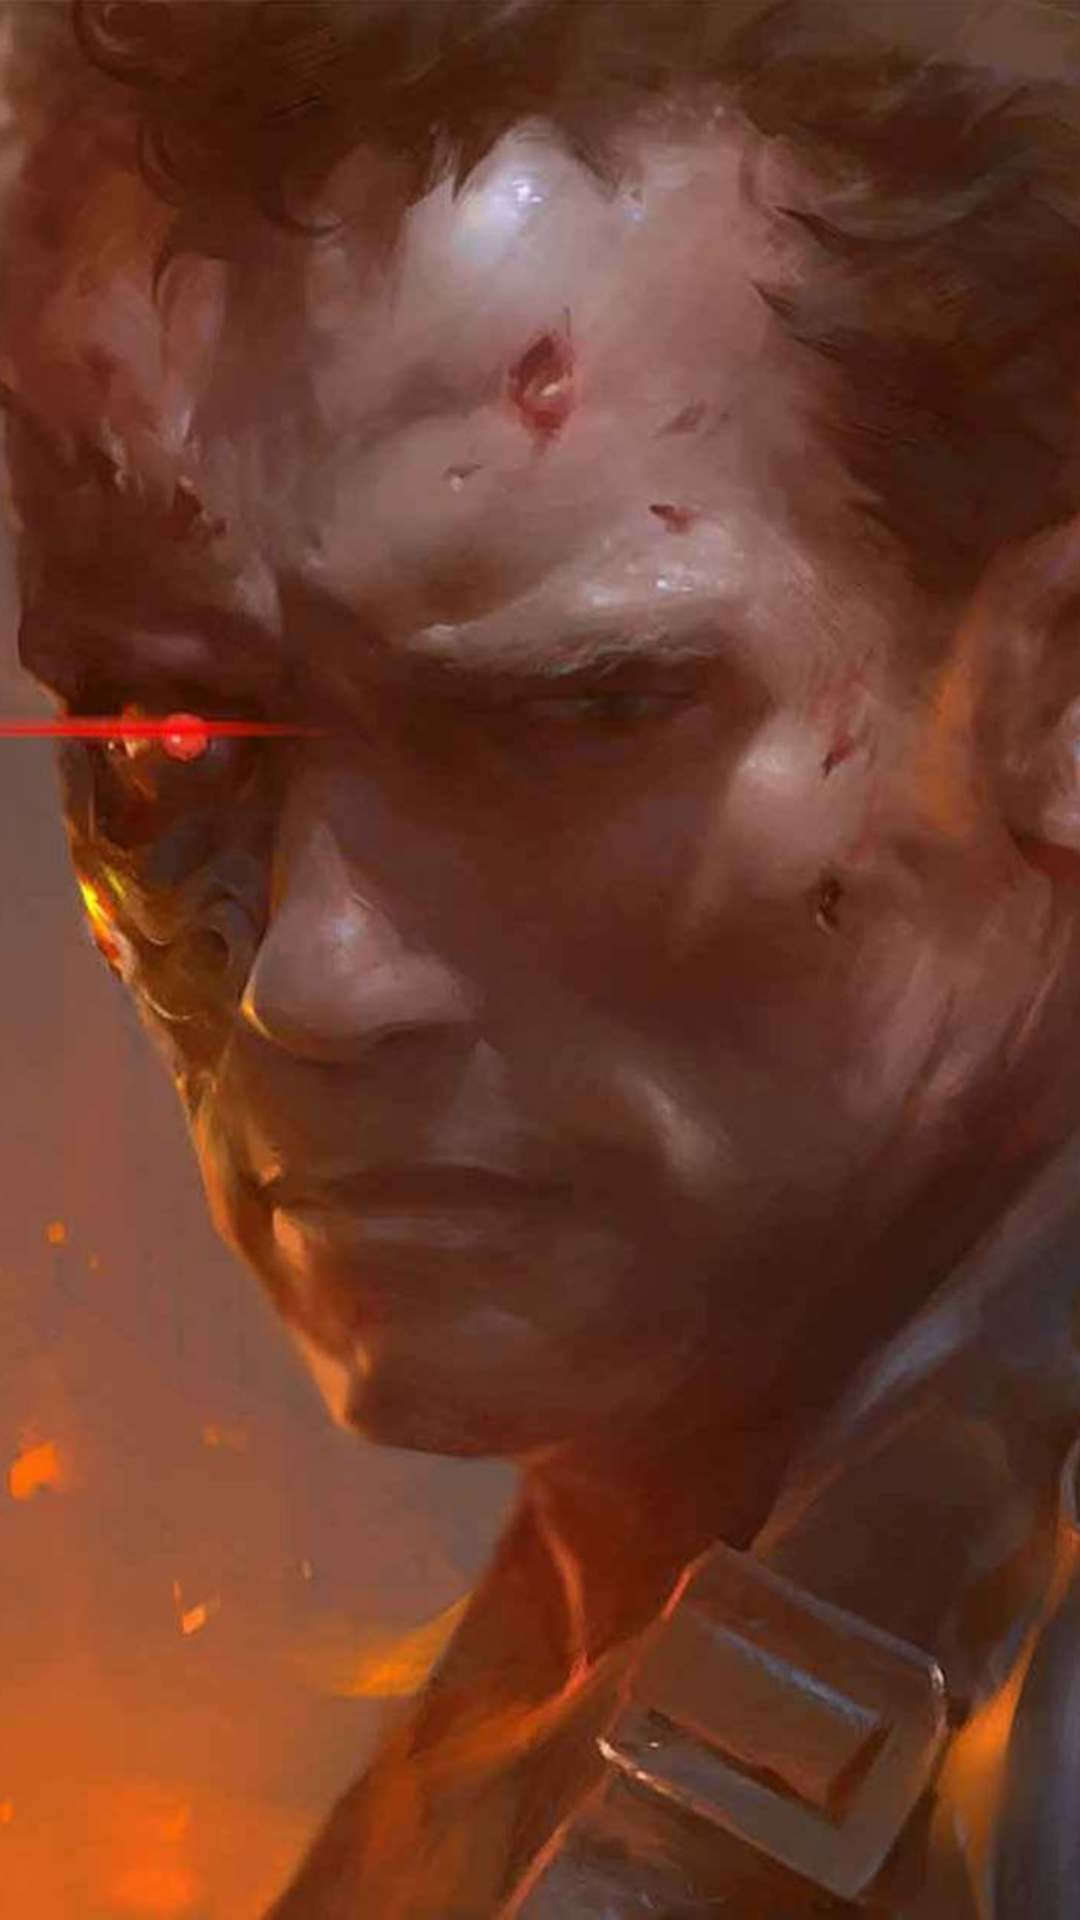 Arnold Schwarzenegger as Terminator Artwork iPhone Wallpaper